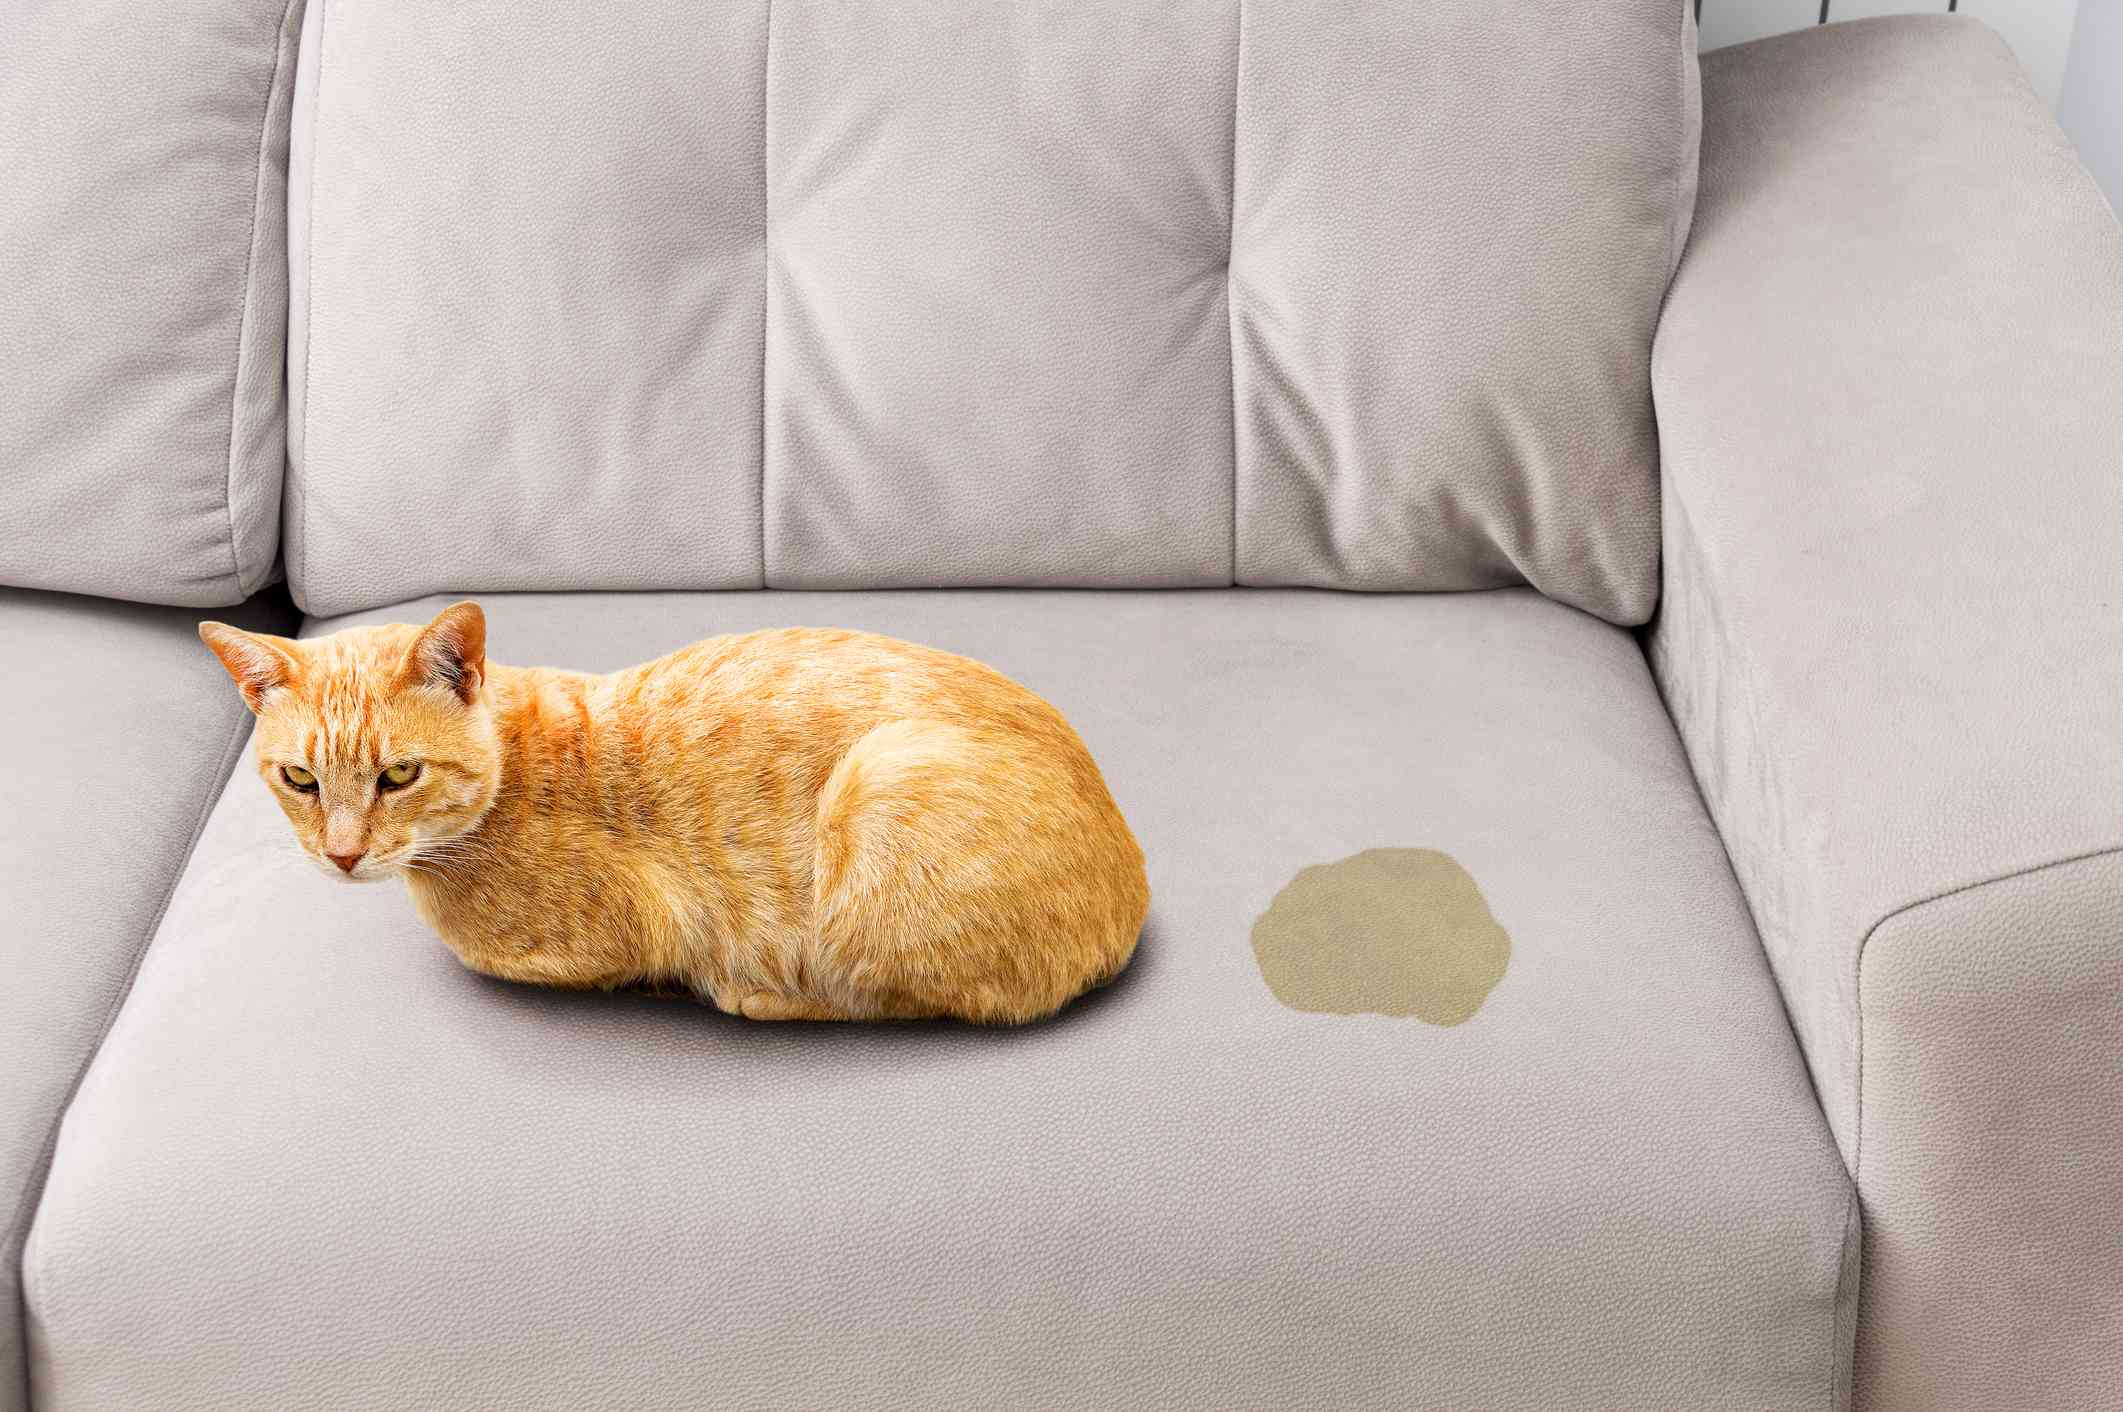 Cat peeing on couch